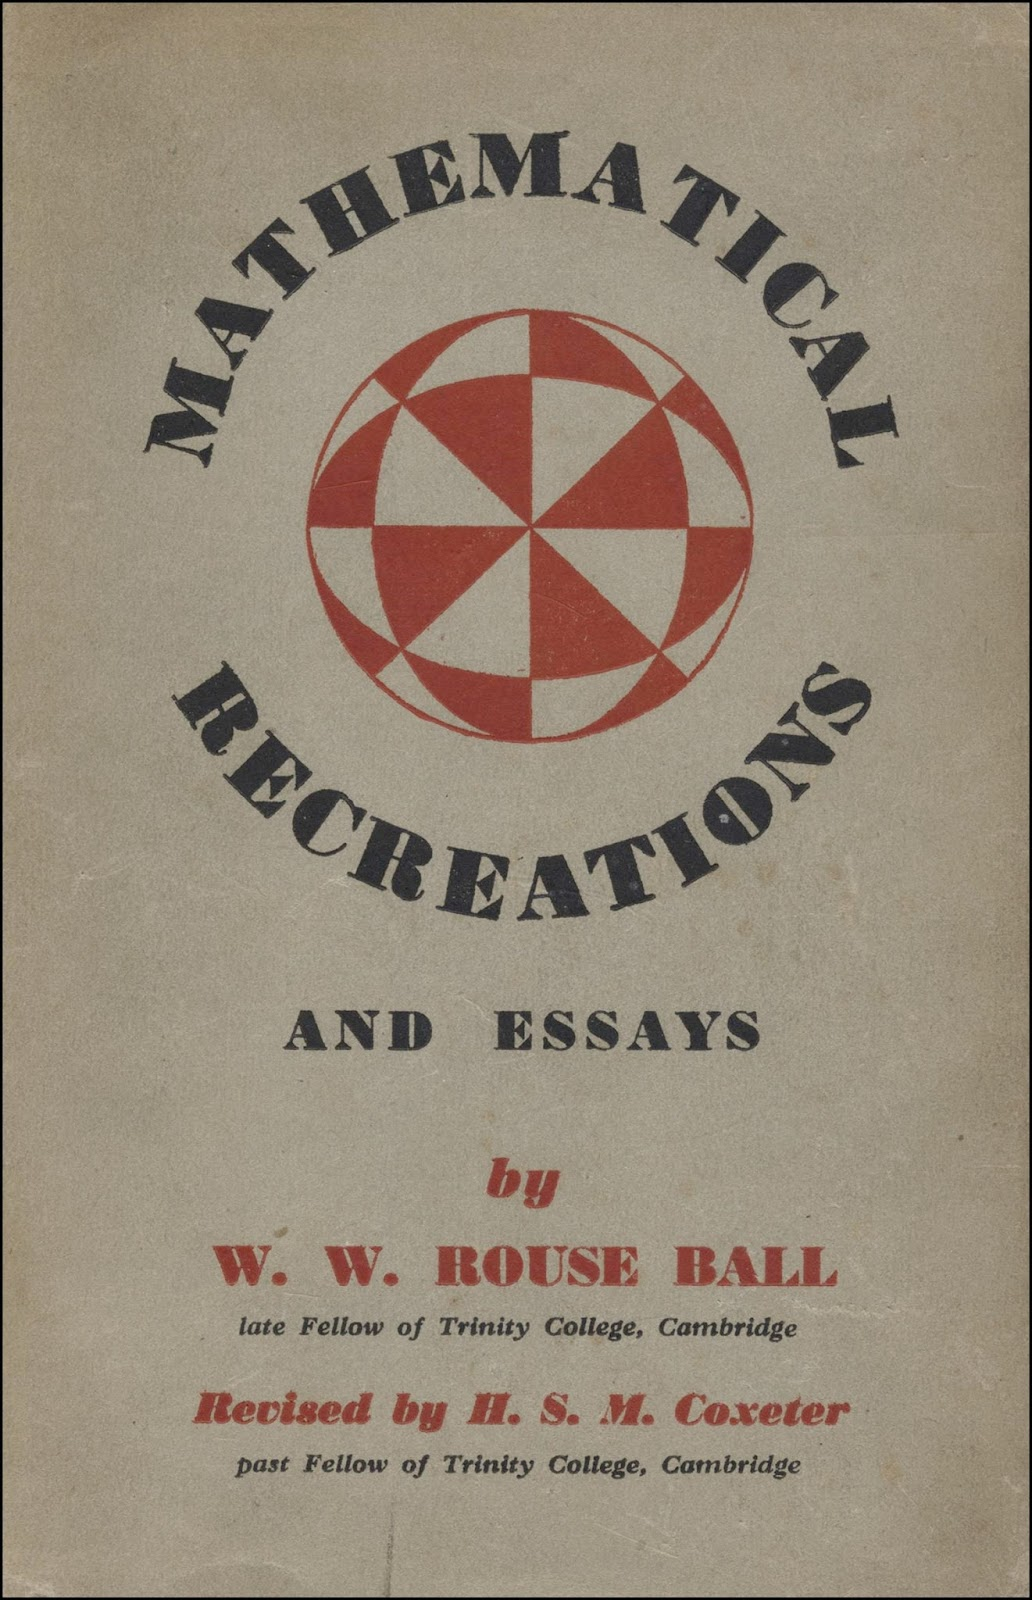 w.w. rouse ball mathematical recreations and essays Free kindle book and epub digitized and proofread by project gutenberg.